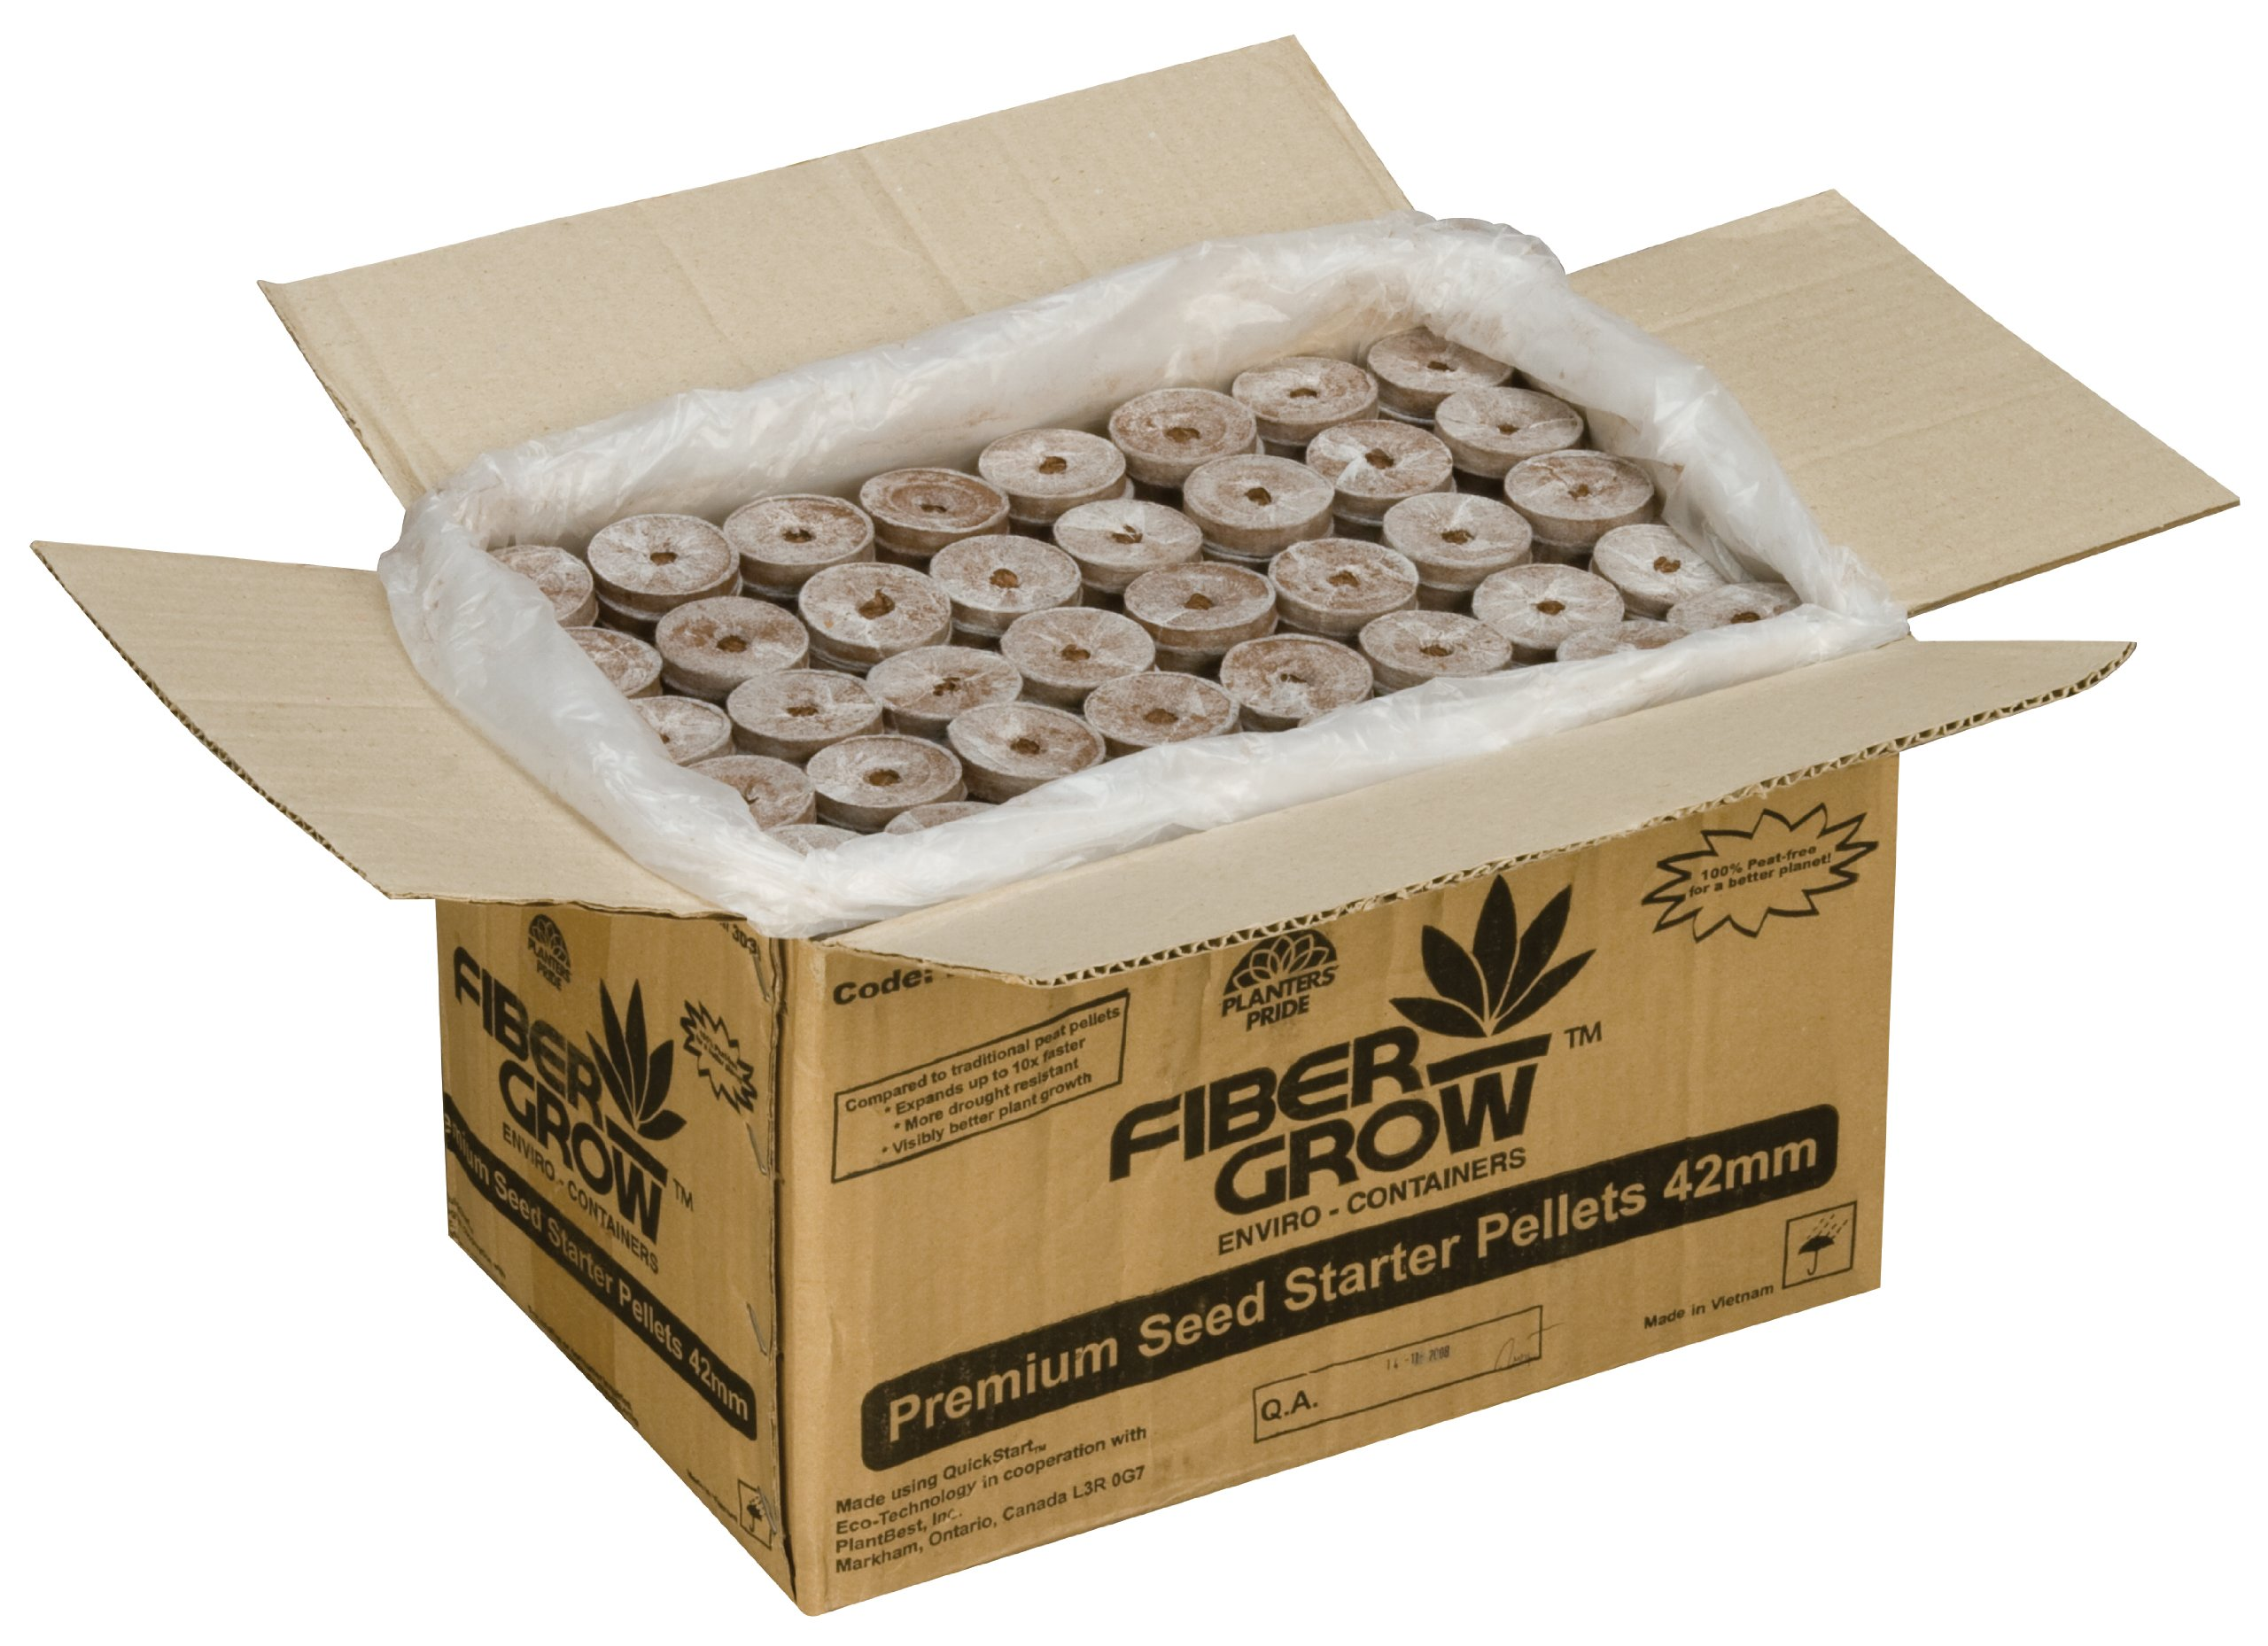 Planters' Pride CRP042F0 Fiber Grow Coconut Coir Refill, 1000 Pellets by Myers